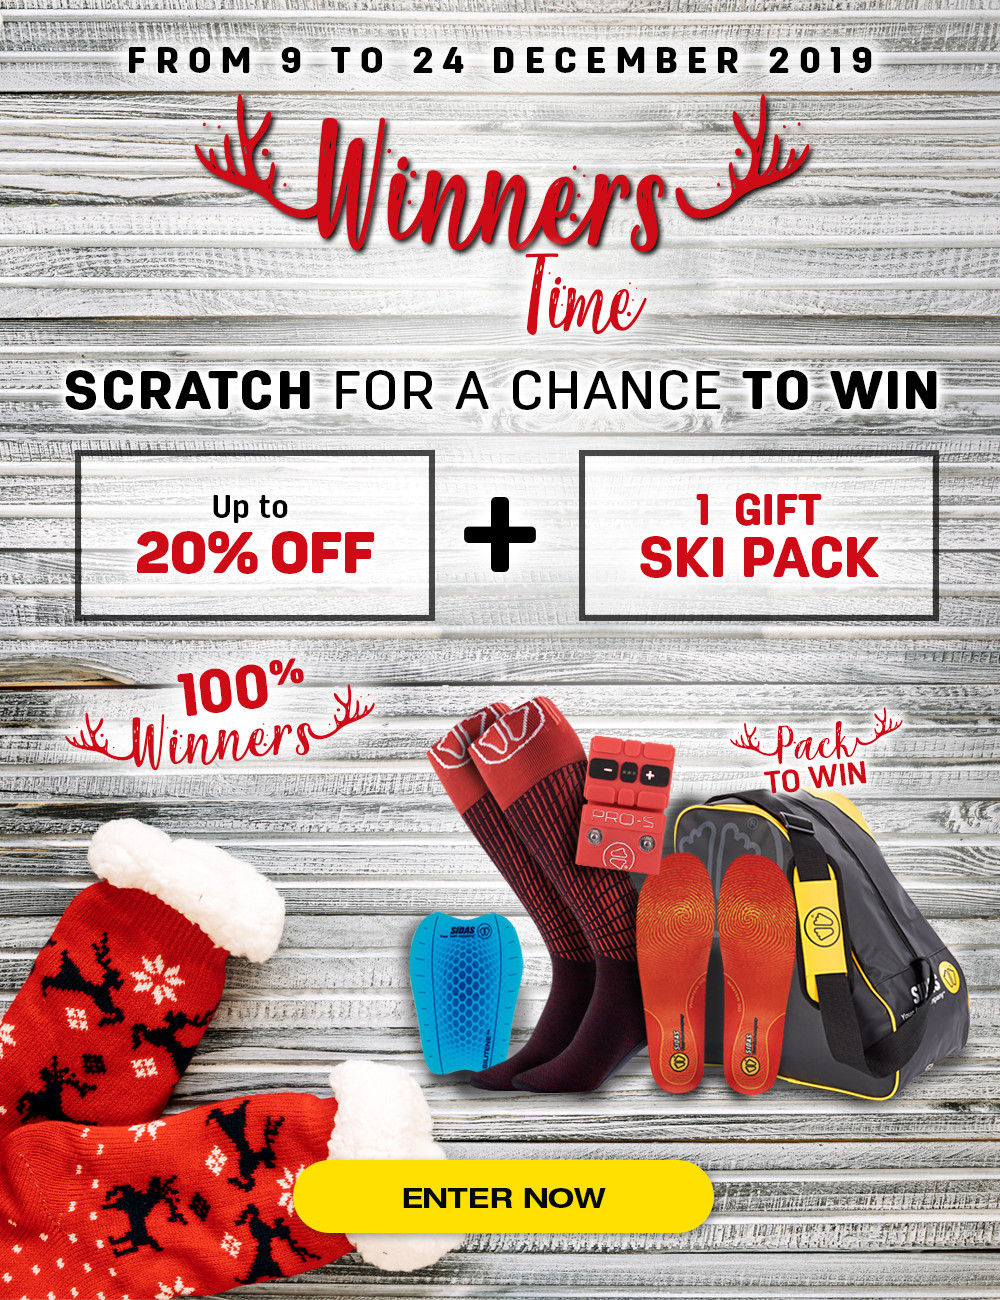 Scratch and try to win a voucher worth 5% to 20% immediate disount!